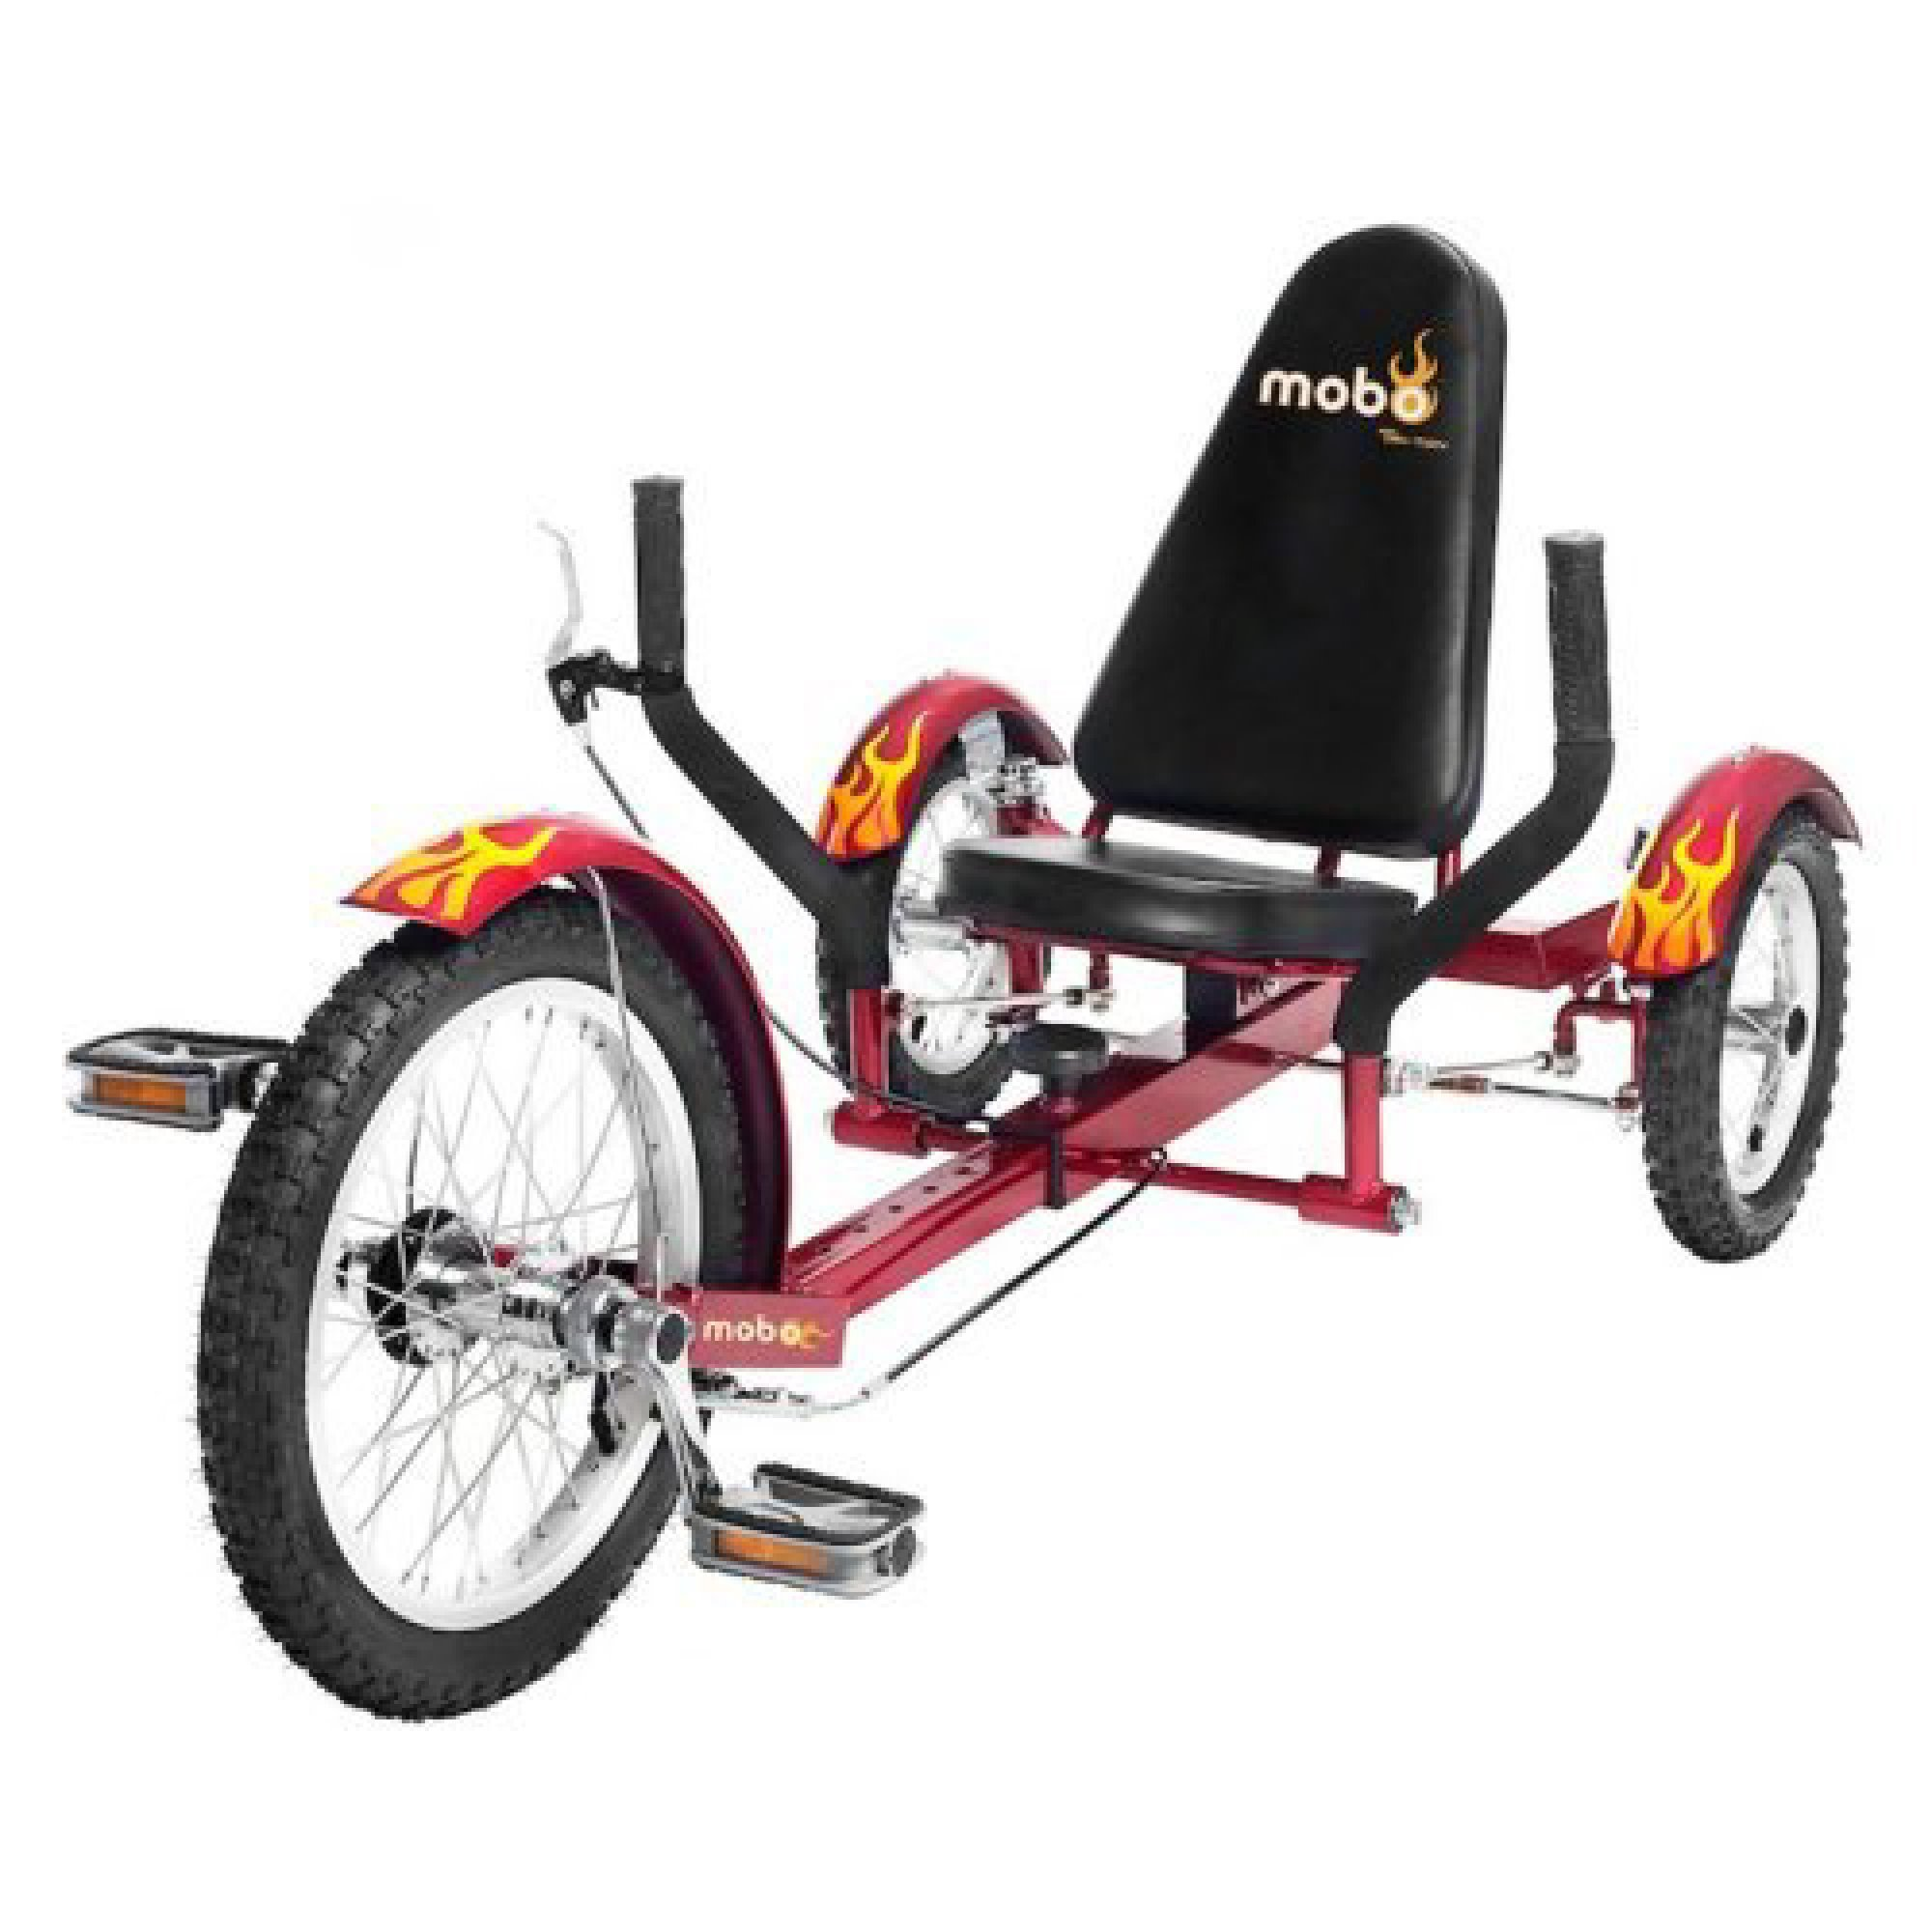 Mobo Triton 16 in. Youth The Ultimate Three Wheeled Cruiser Recumbent Bicycle